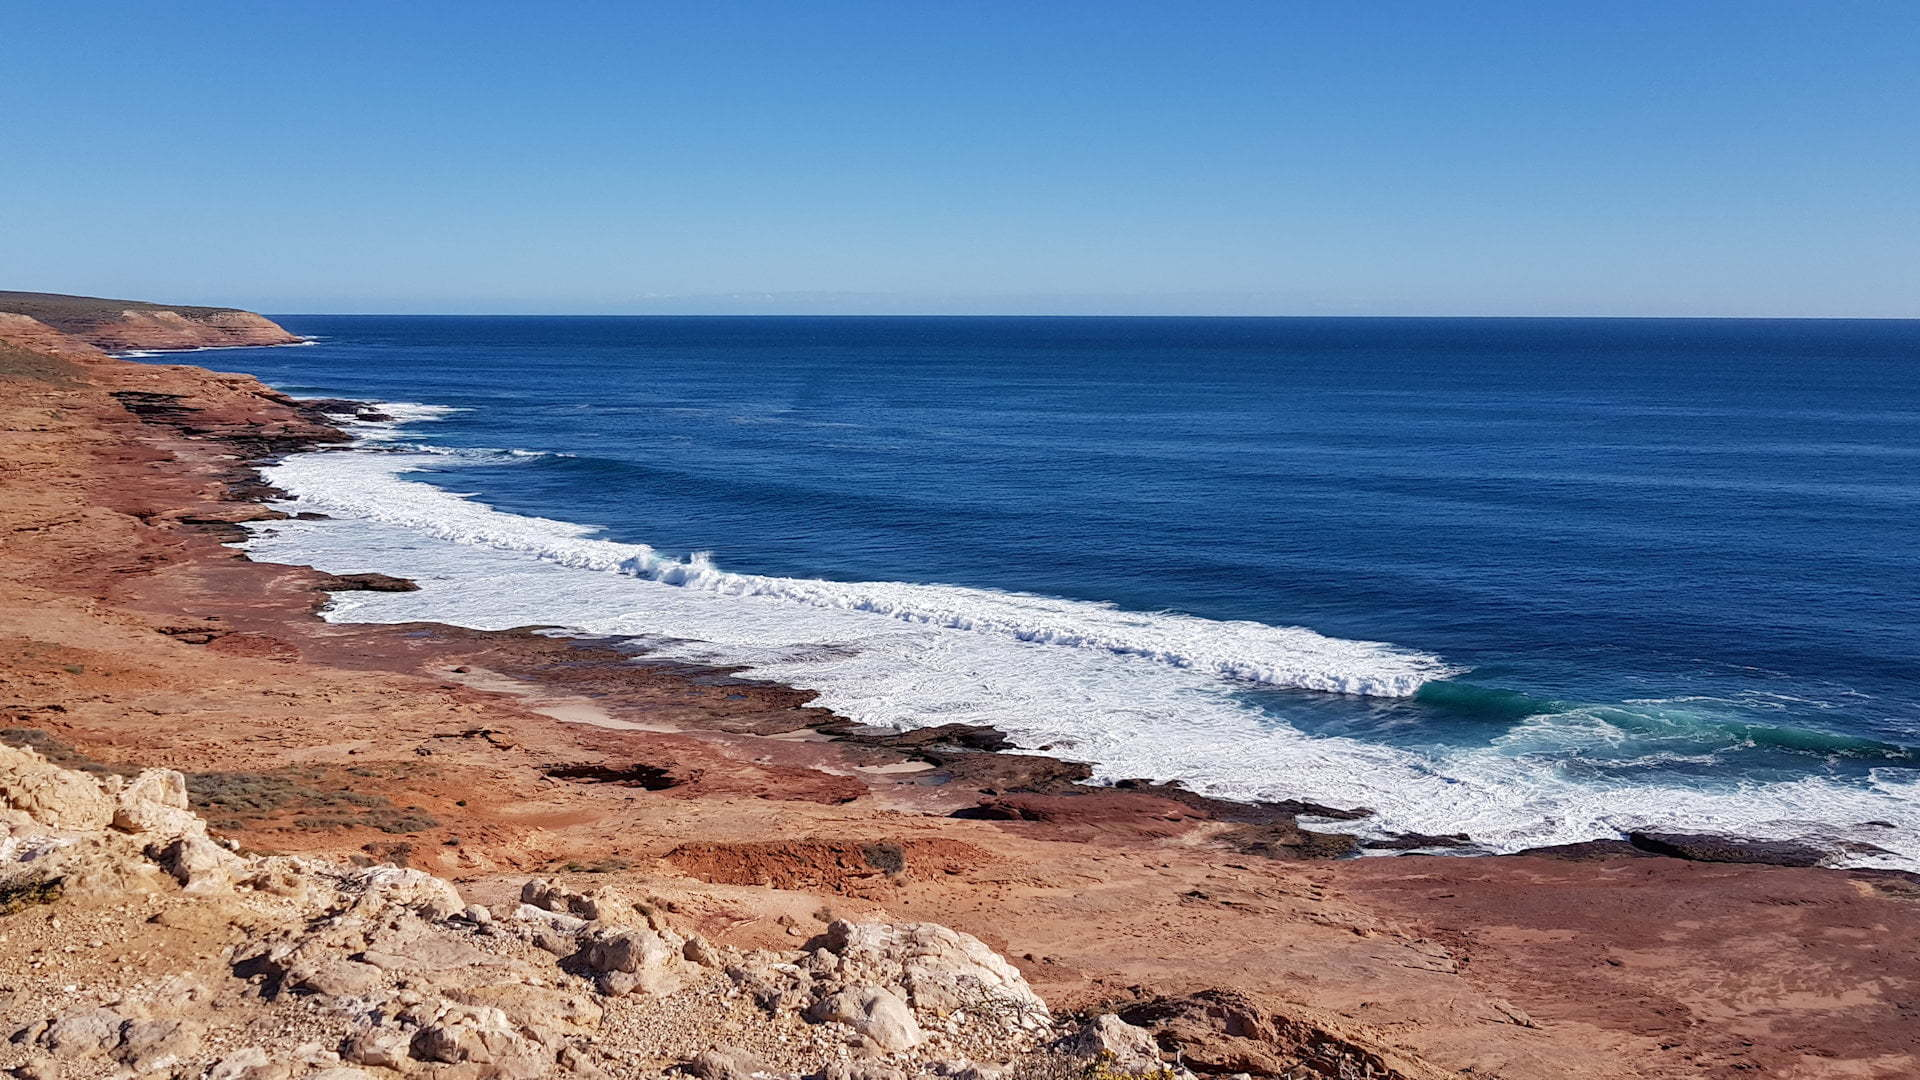 Red cliff coastline with blue ocean and blue sky, taken at Red Bluff in Kalbarri National Park